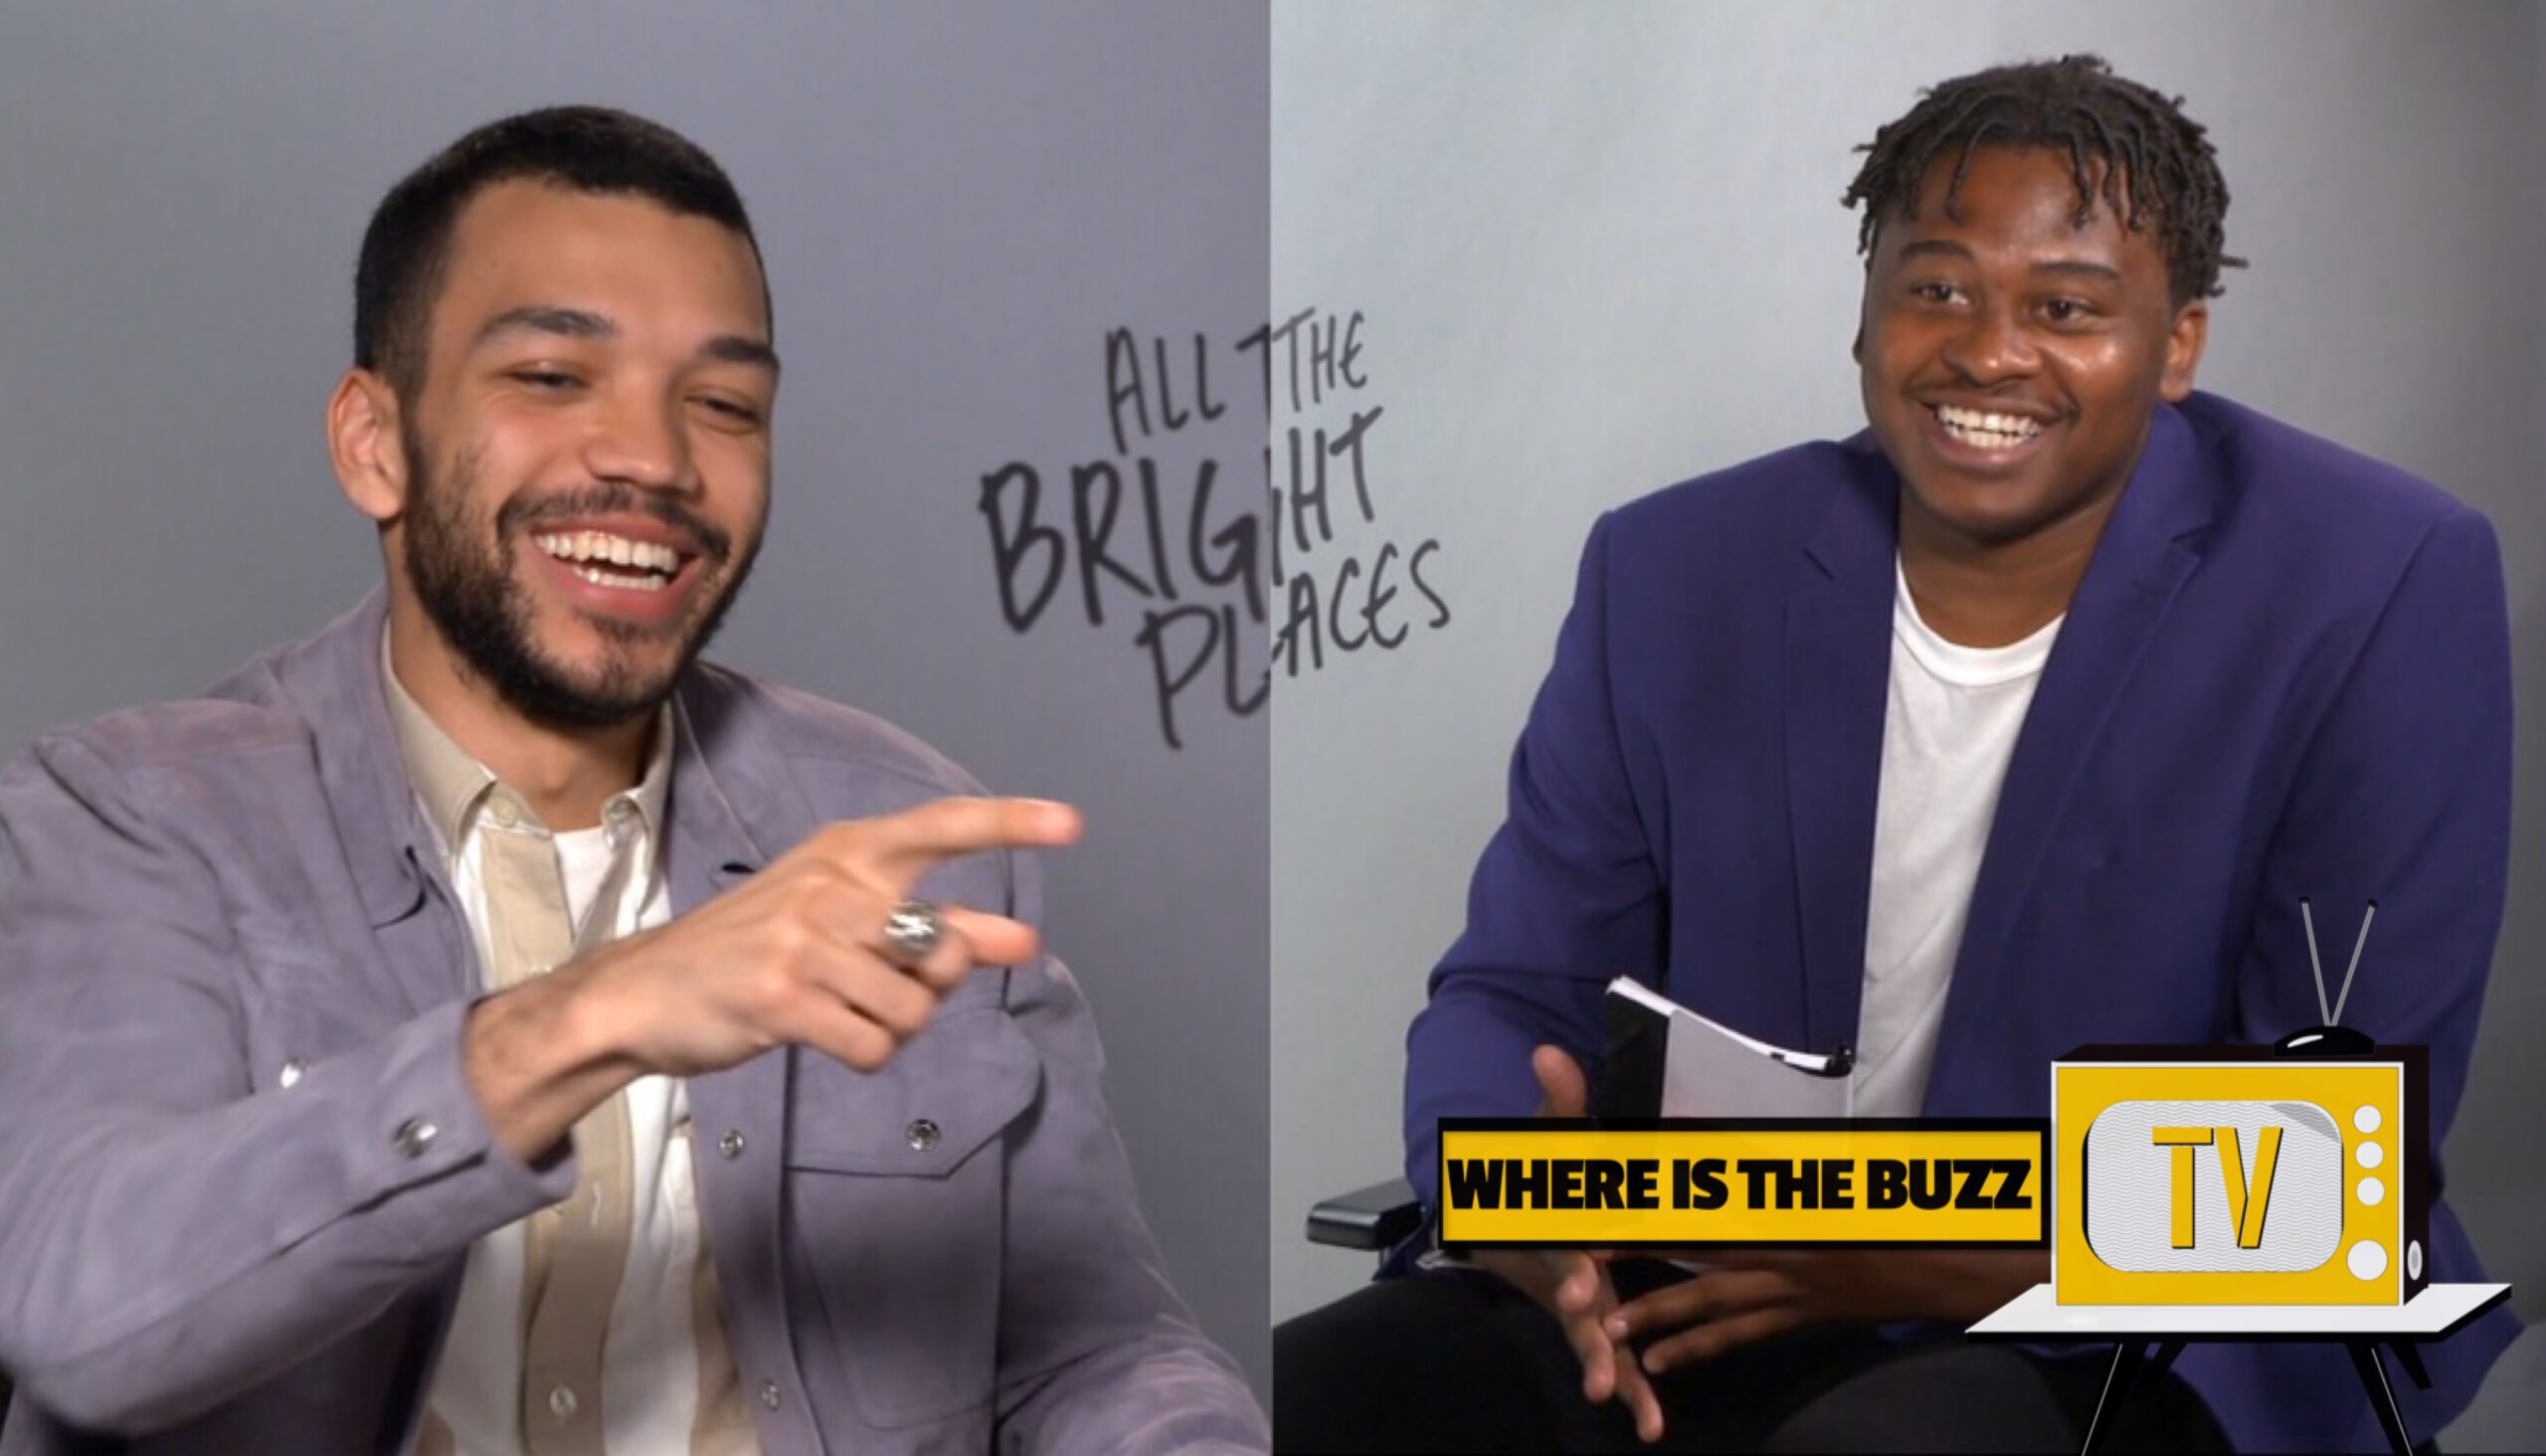 ALL THE BRIGHT PLACES INTERVIEWS: JUSTICE SMITH TALKS MENTAL HEALTH AND WORKING WITH ELLE FANNING